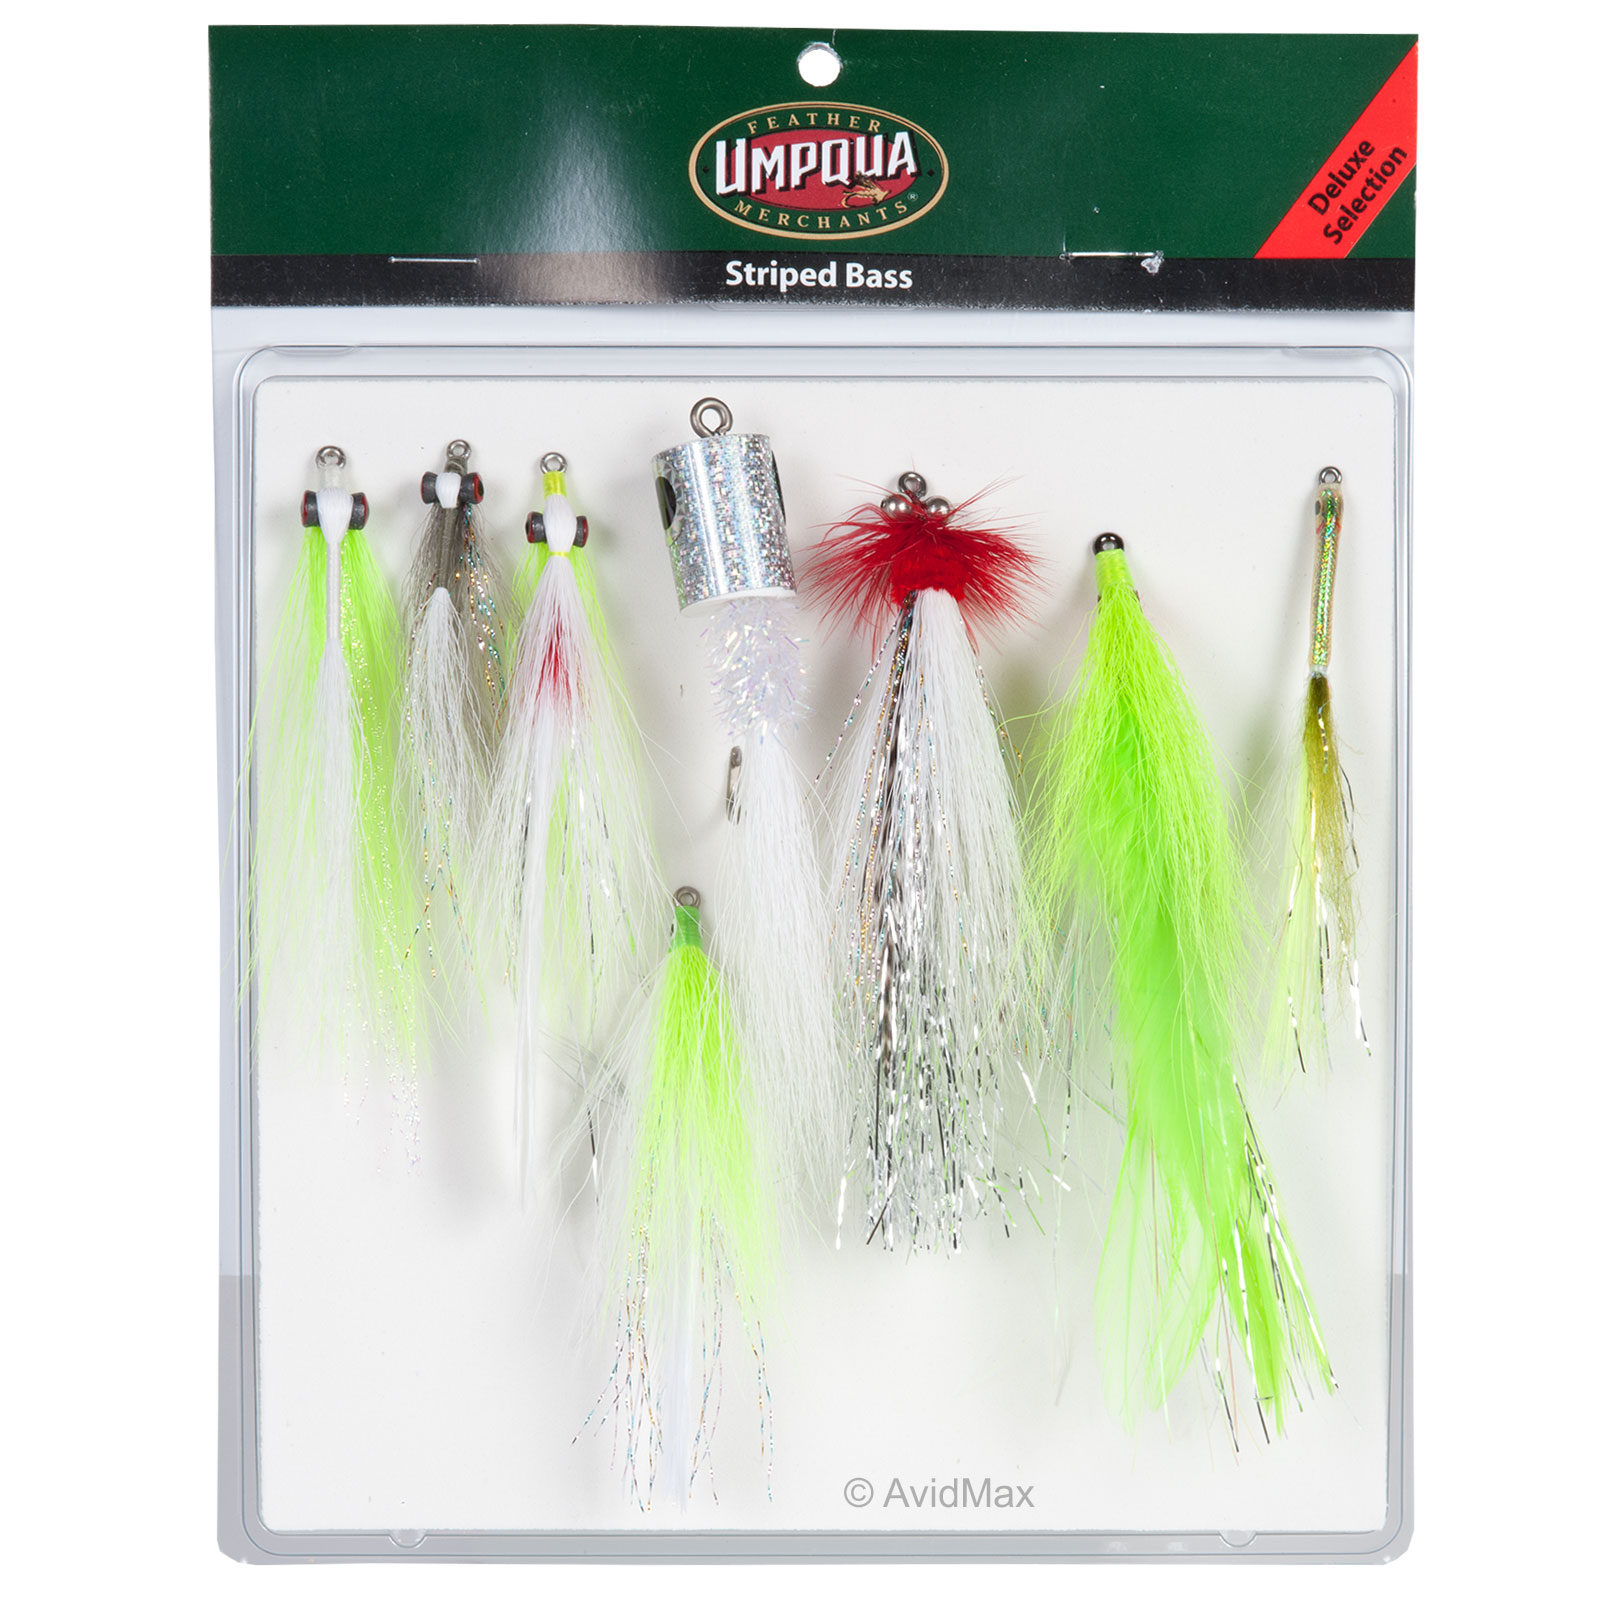 Umpqua Striped Bass Fly Fishing Deluxe and Guide Fly Selections Assortments